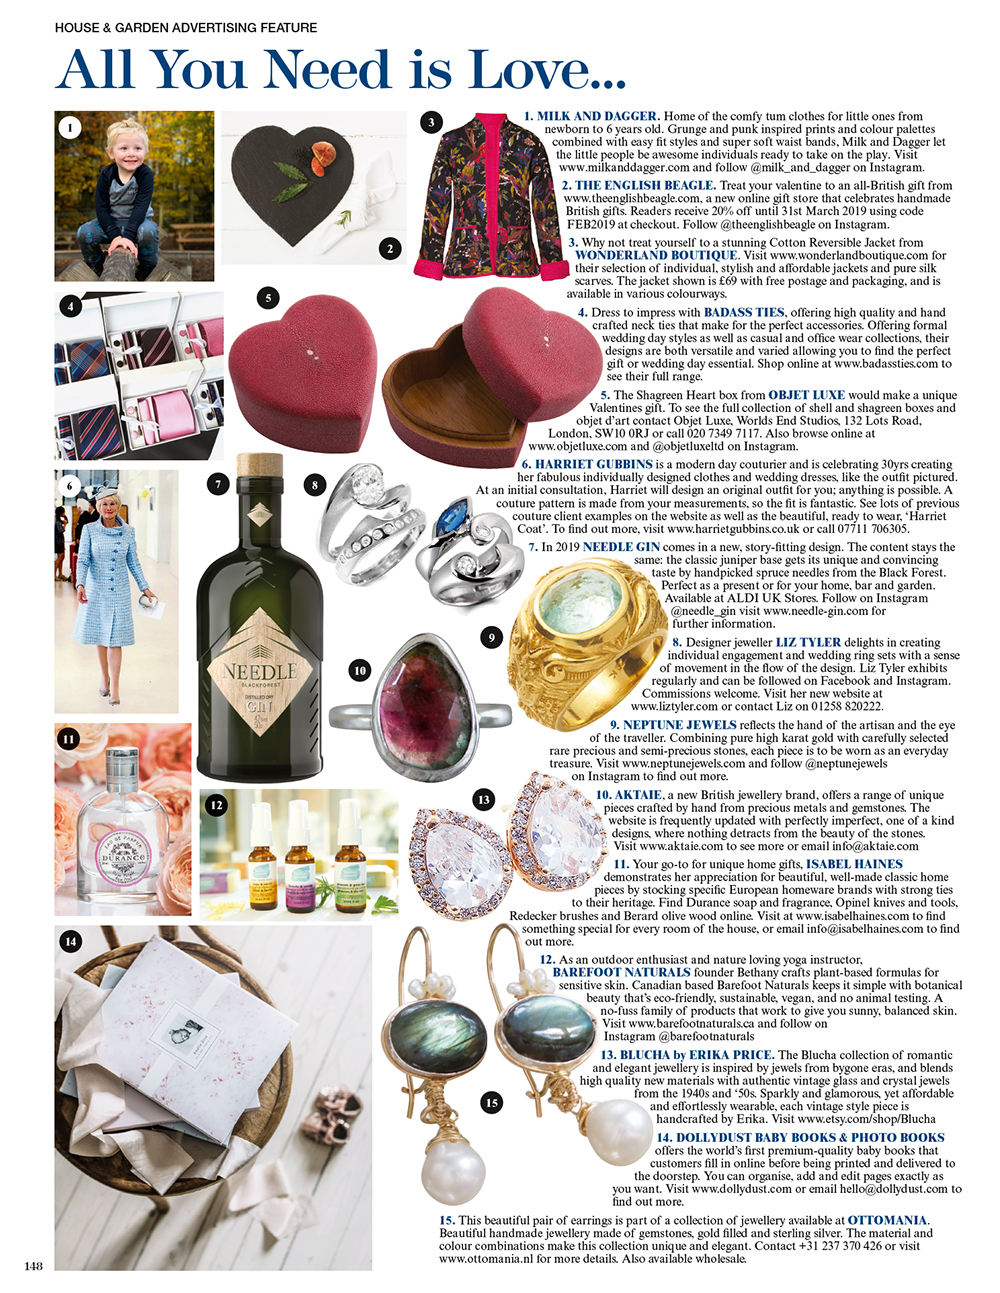 148-All-You-Need-is-Love - Objet Luxe